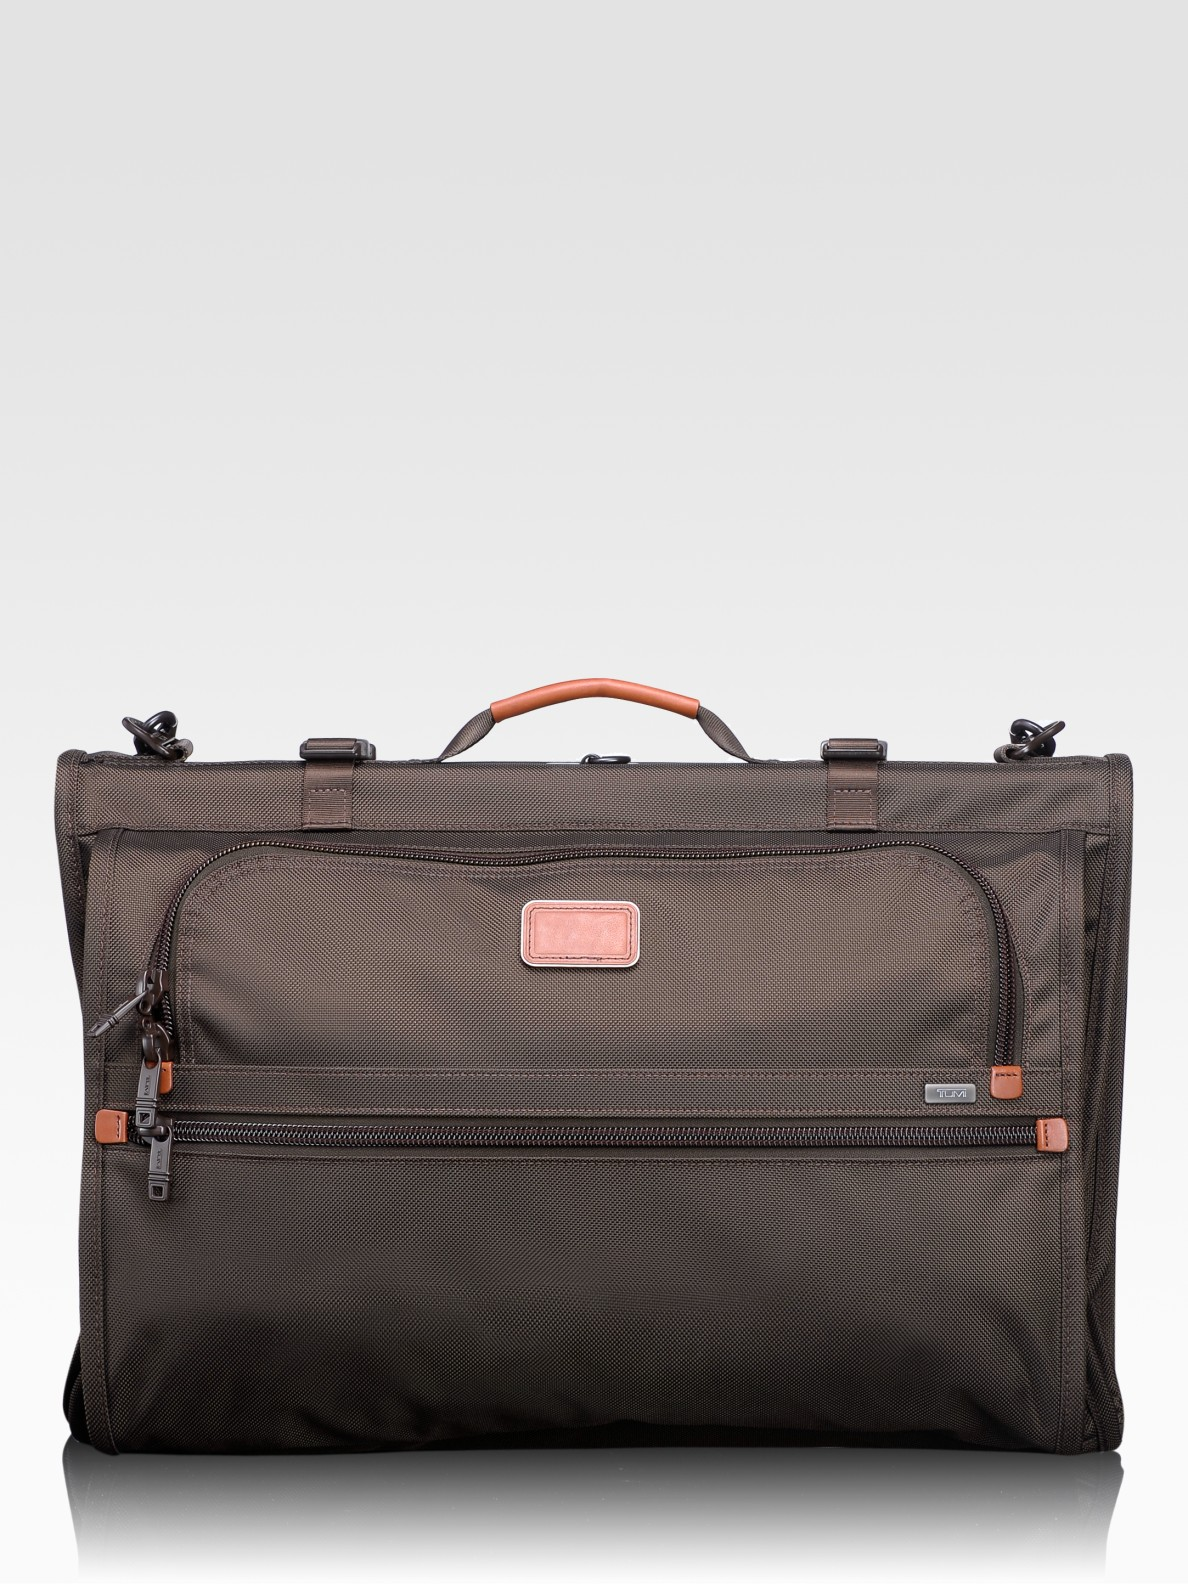 8c0d539e63 Lyst - Tumi Alpha Tri-fold Carry-on Garment Bag in Brown for Men